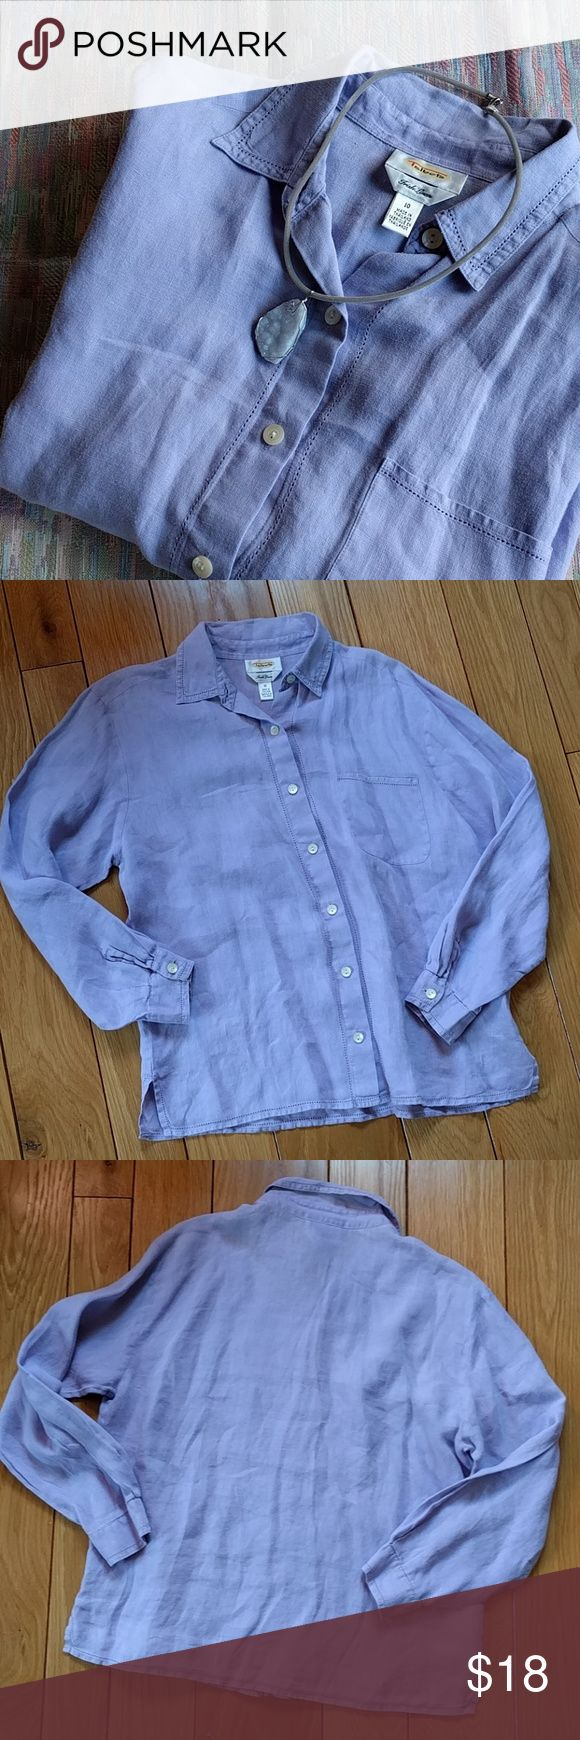 """VTG Irish Linen Talbots button down shirt Beautiful periwinkle blue color Irish linen.  Vintage 1990s Talbots shirt.  In great condition, no tears or stains.  Color closest to the last picture, close up of the pocket.  Measures 21"""" flat across under the armpits, 25"""" length.  100% Irish linen. Vintage Tops Button Down Shirts"""